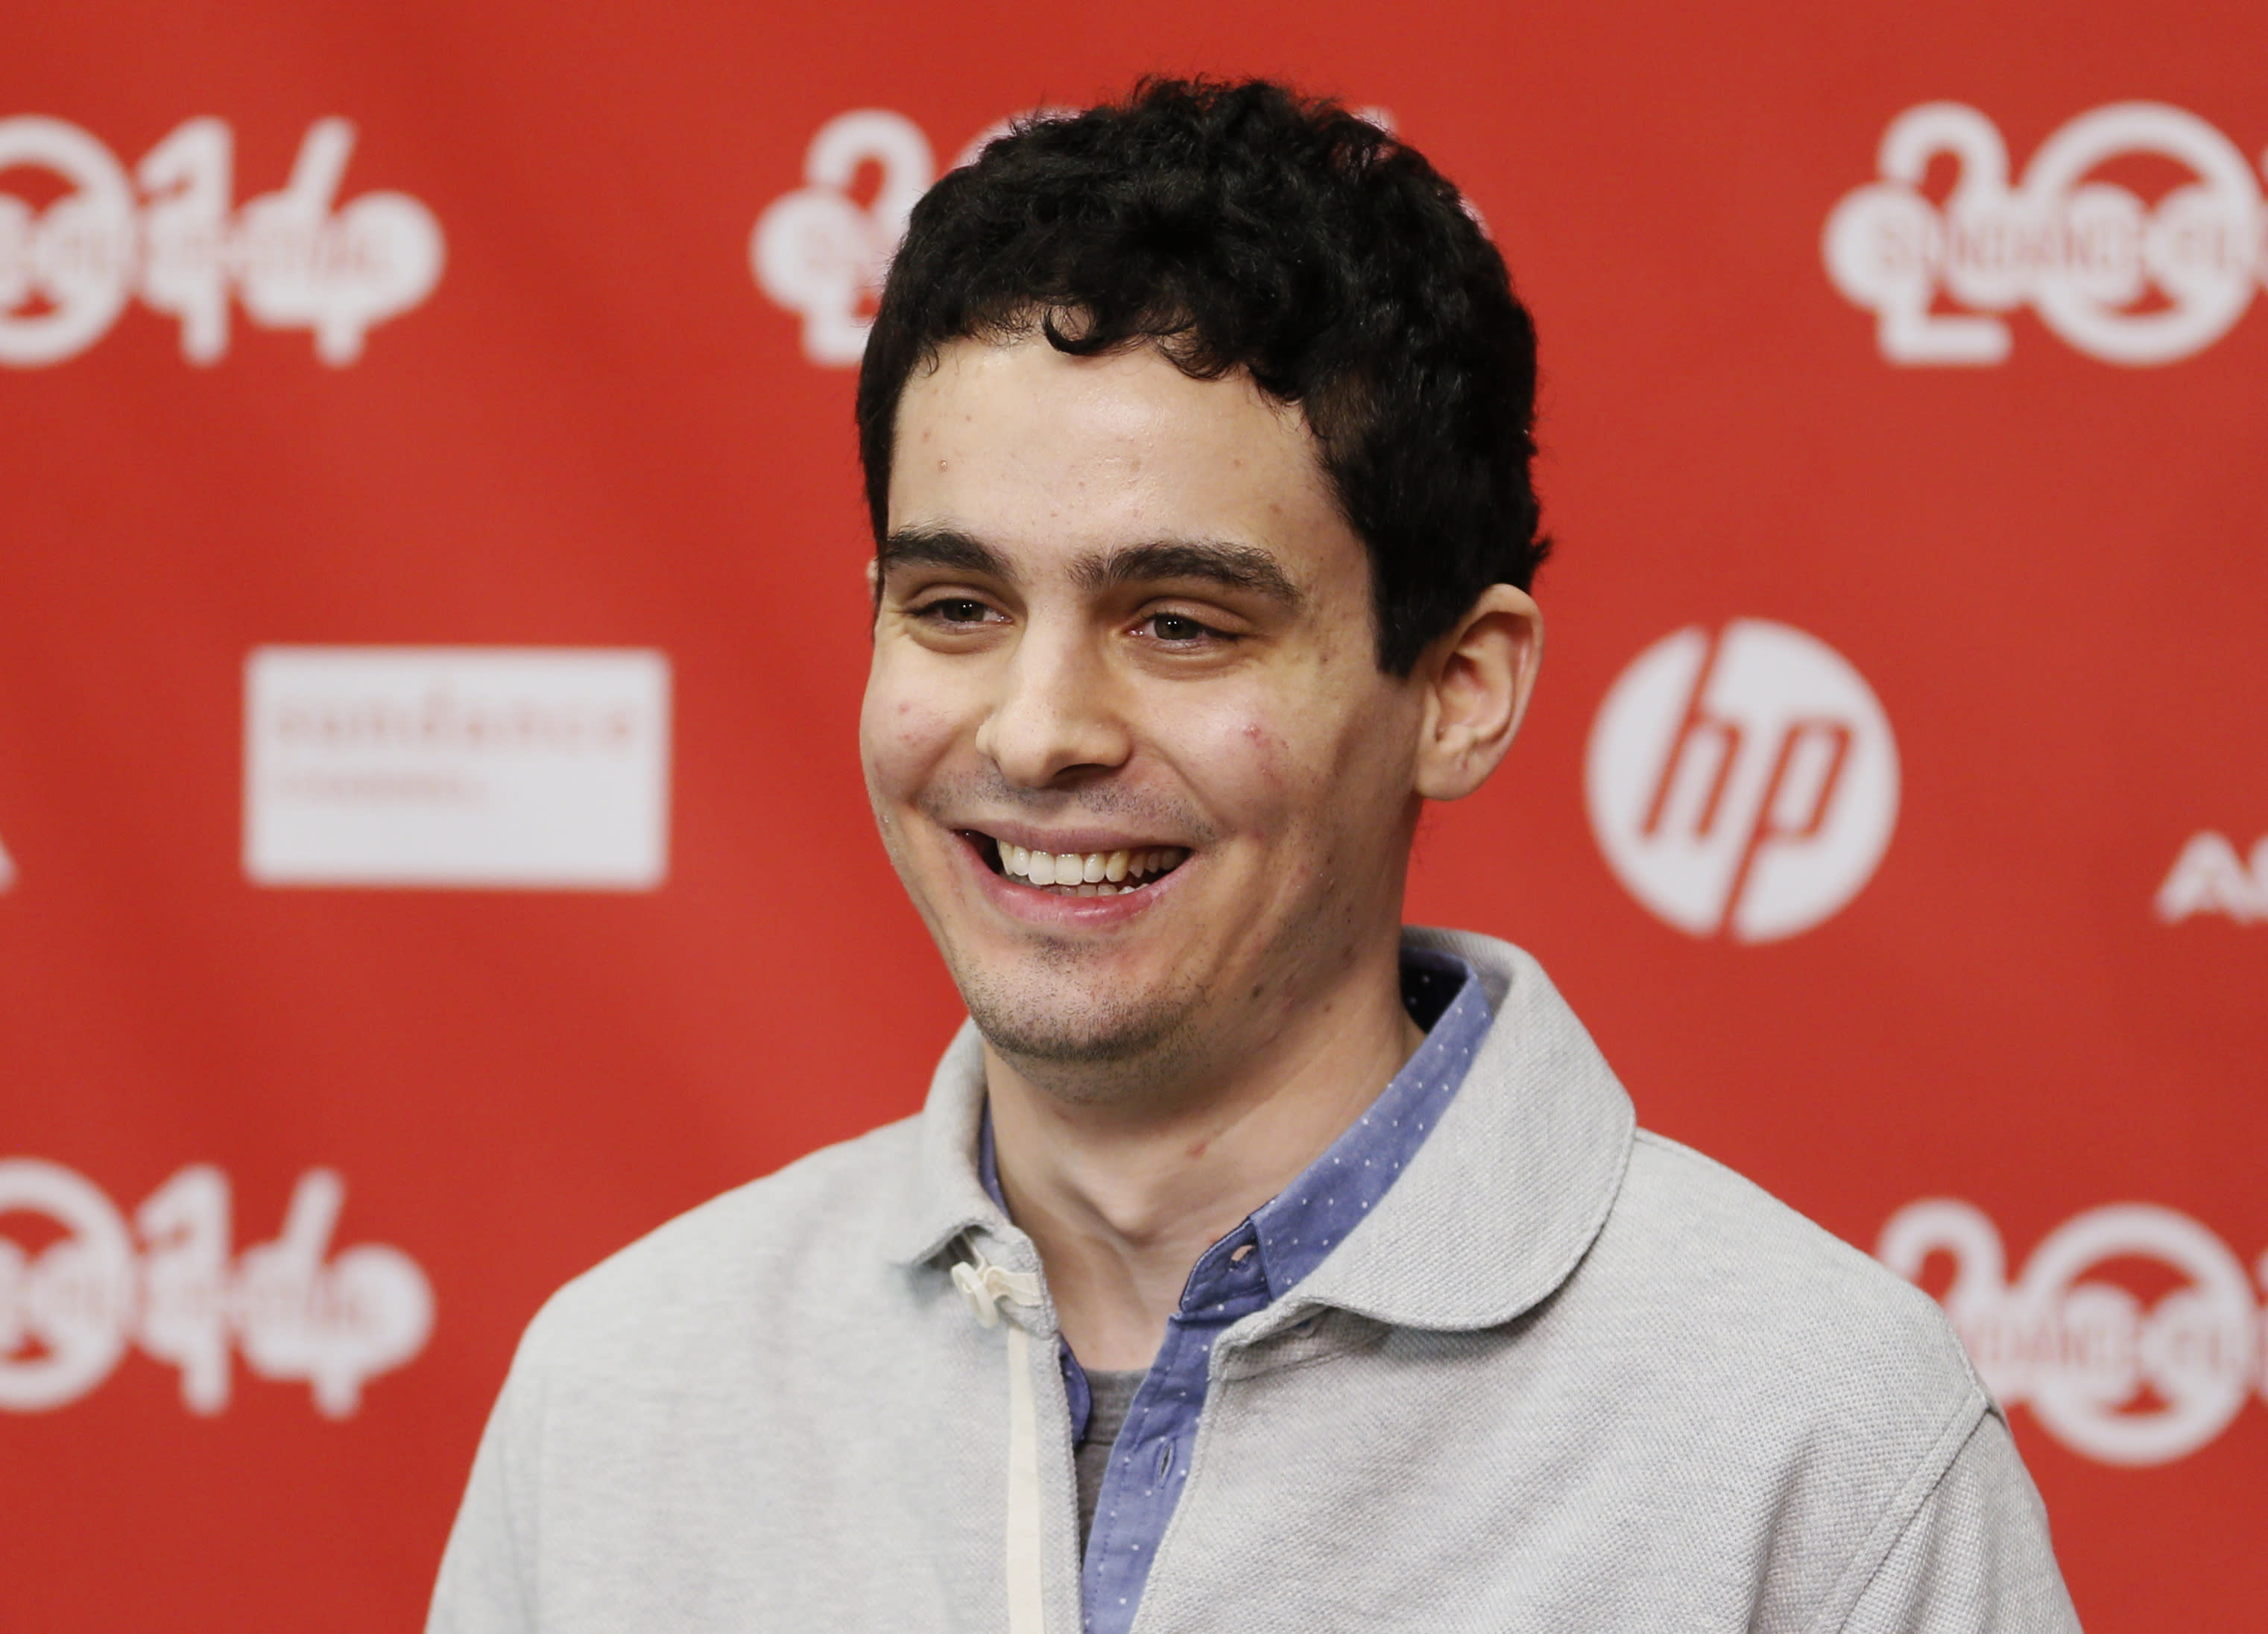 """Director and screenwriter Damien Chazelle poses at the opening night premiere of the film """"Whiplash"""" during the 2014 Sundance Film Festival, on Thursday, Jan. 16, 2014, in Park City, Utah. (Photo by Danny Moloshok/Invision/AP)"""